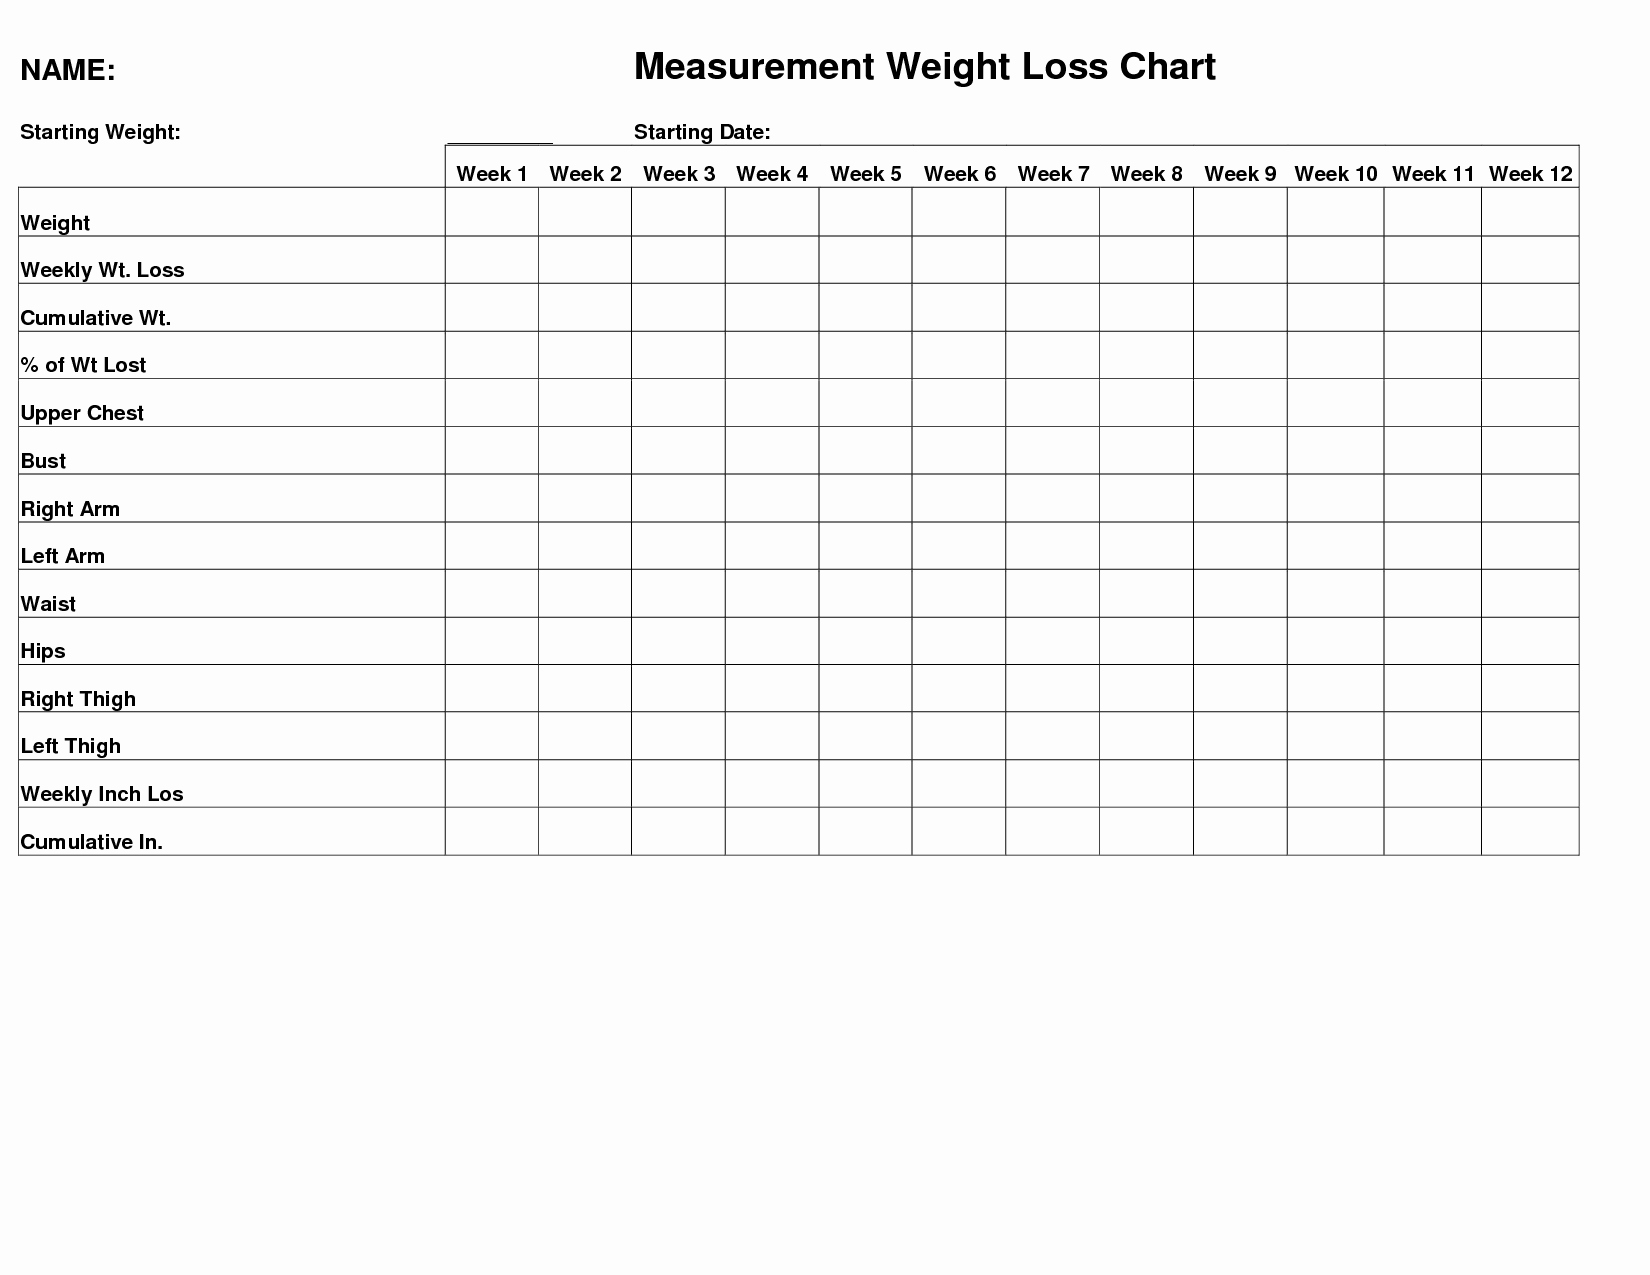 Weight Loss Measurement Chart Lovely Weight Measurement Chart Google Search